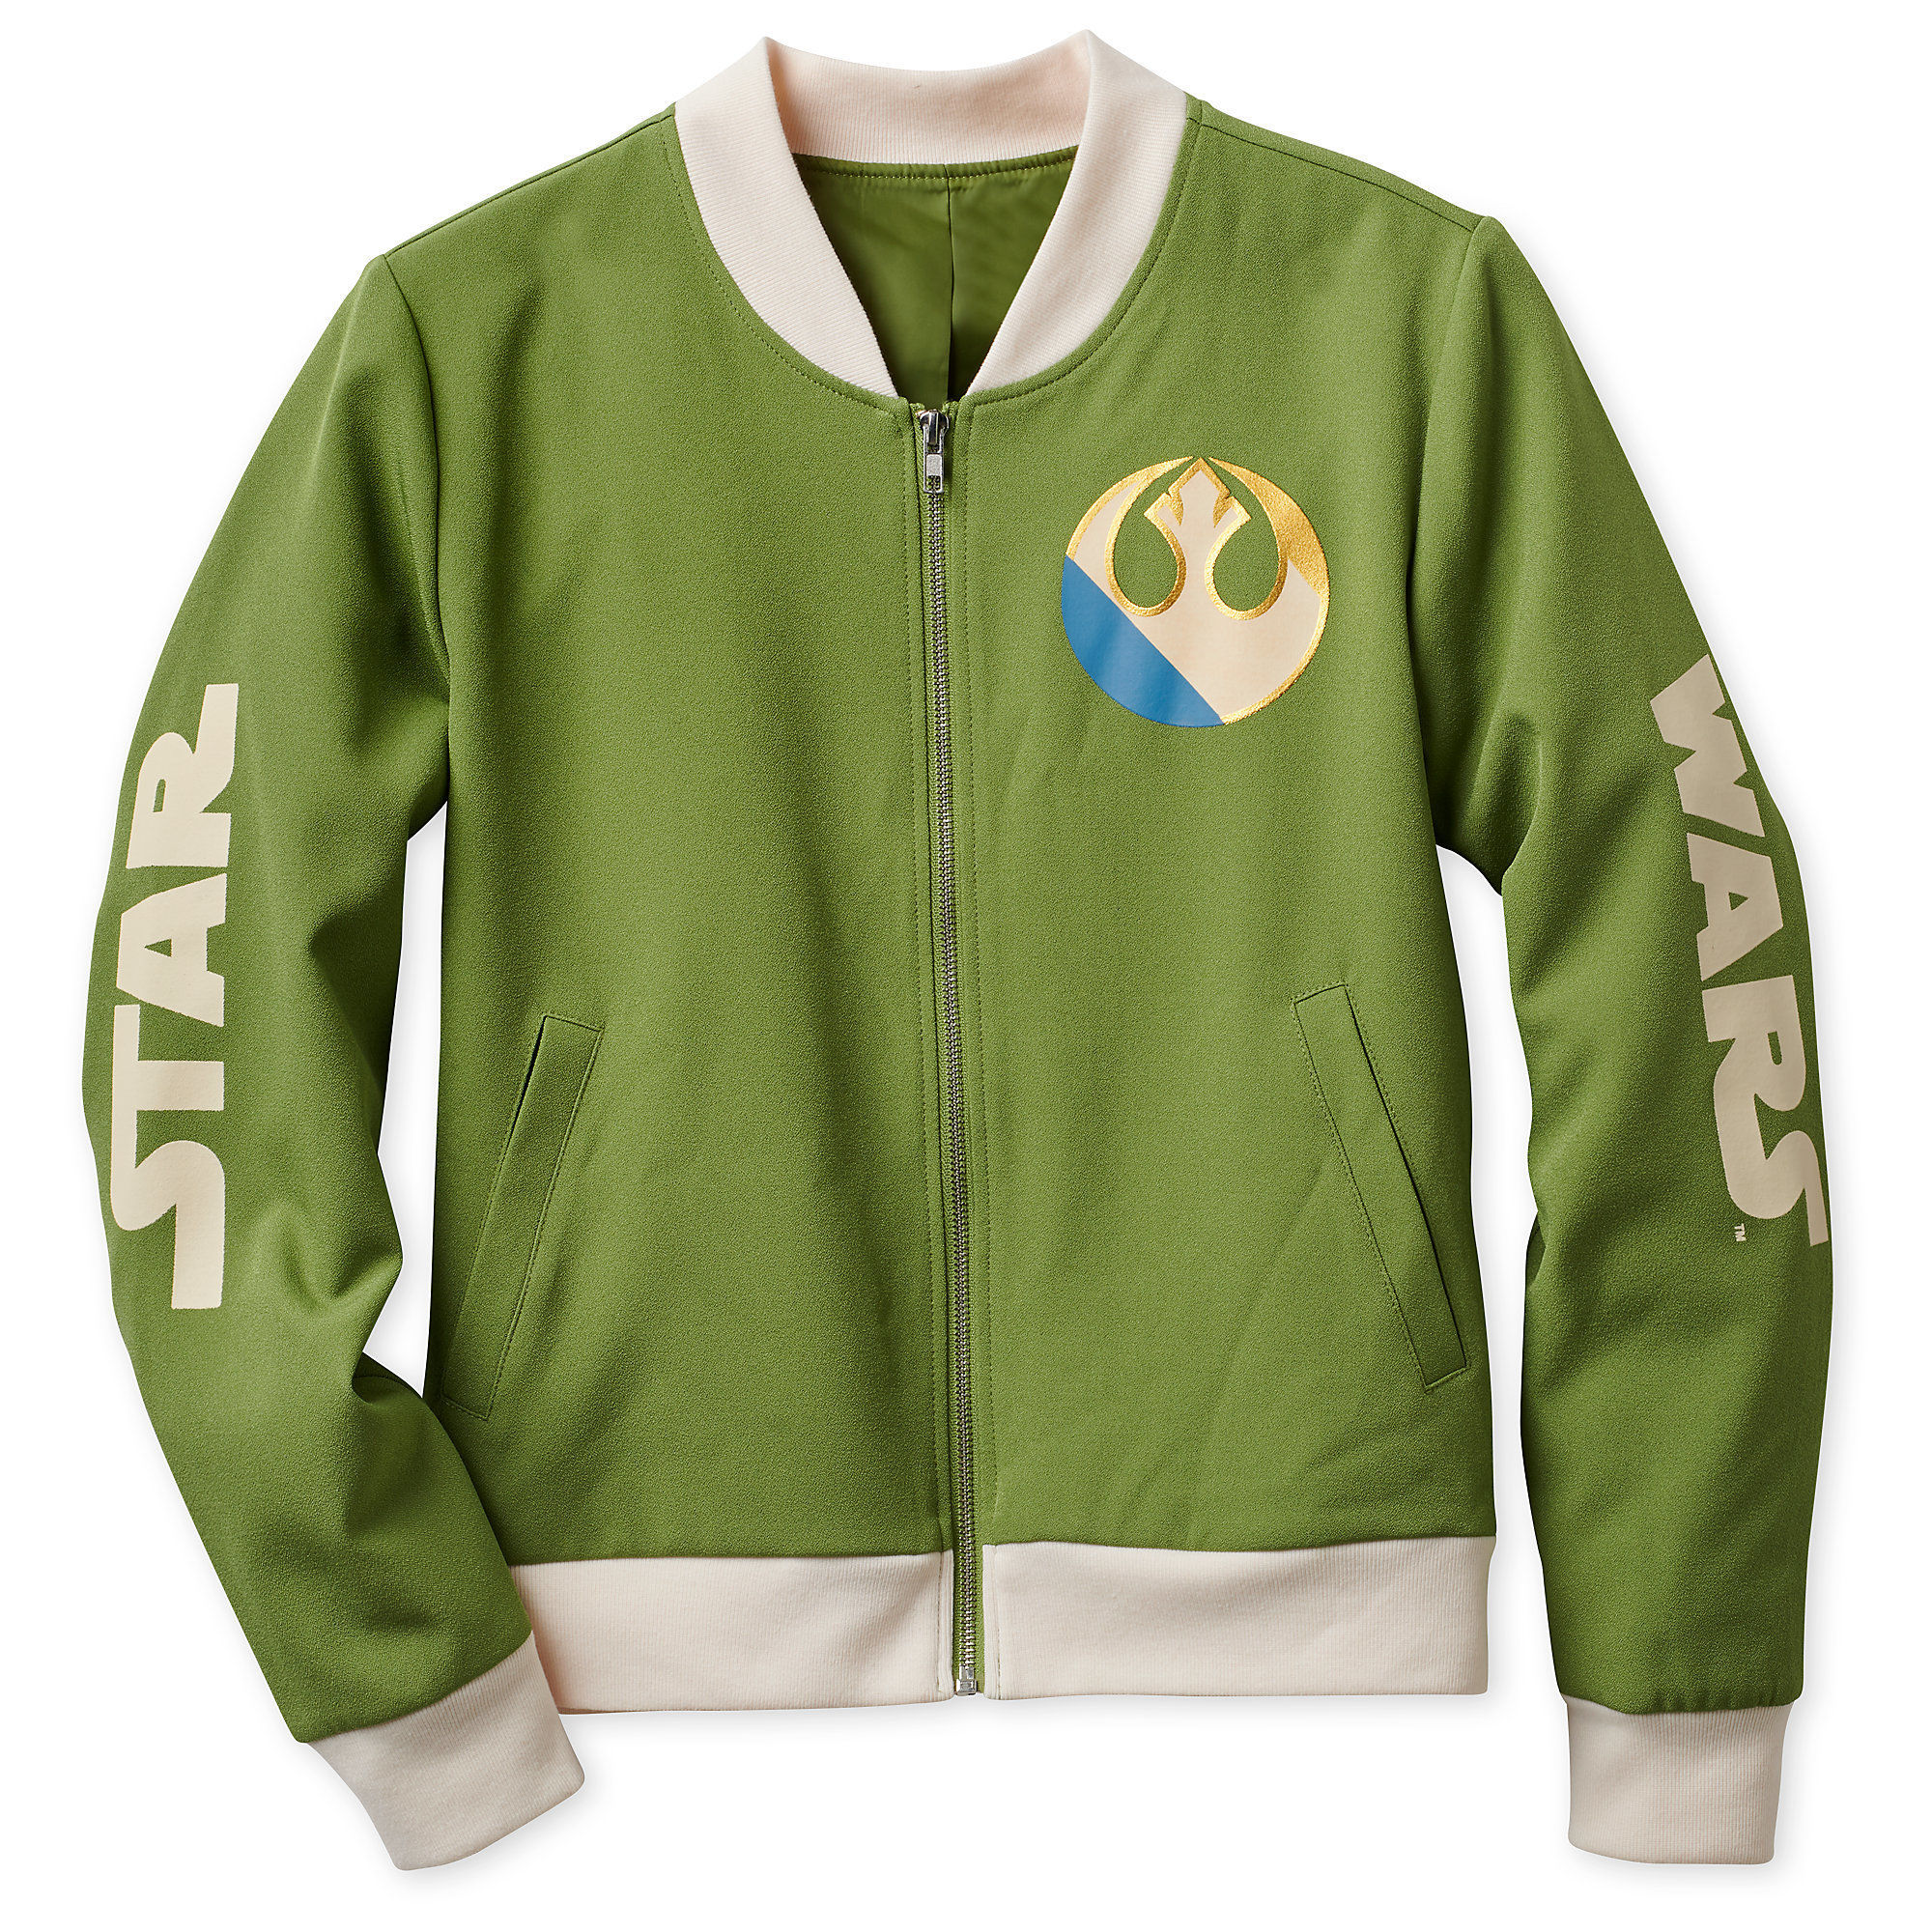 Women's Star Wars The Chosen One Track Jacket at Shop Disney